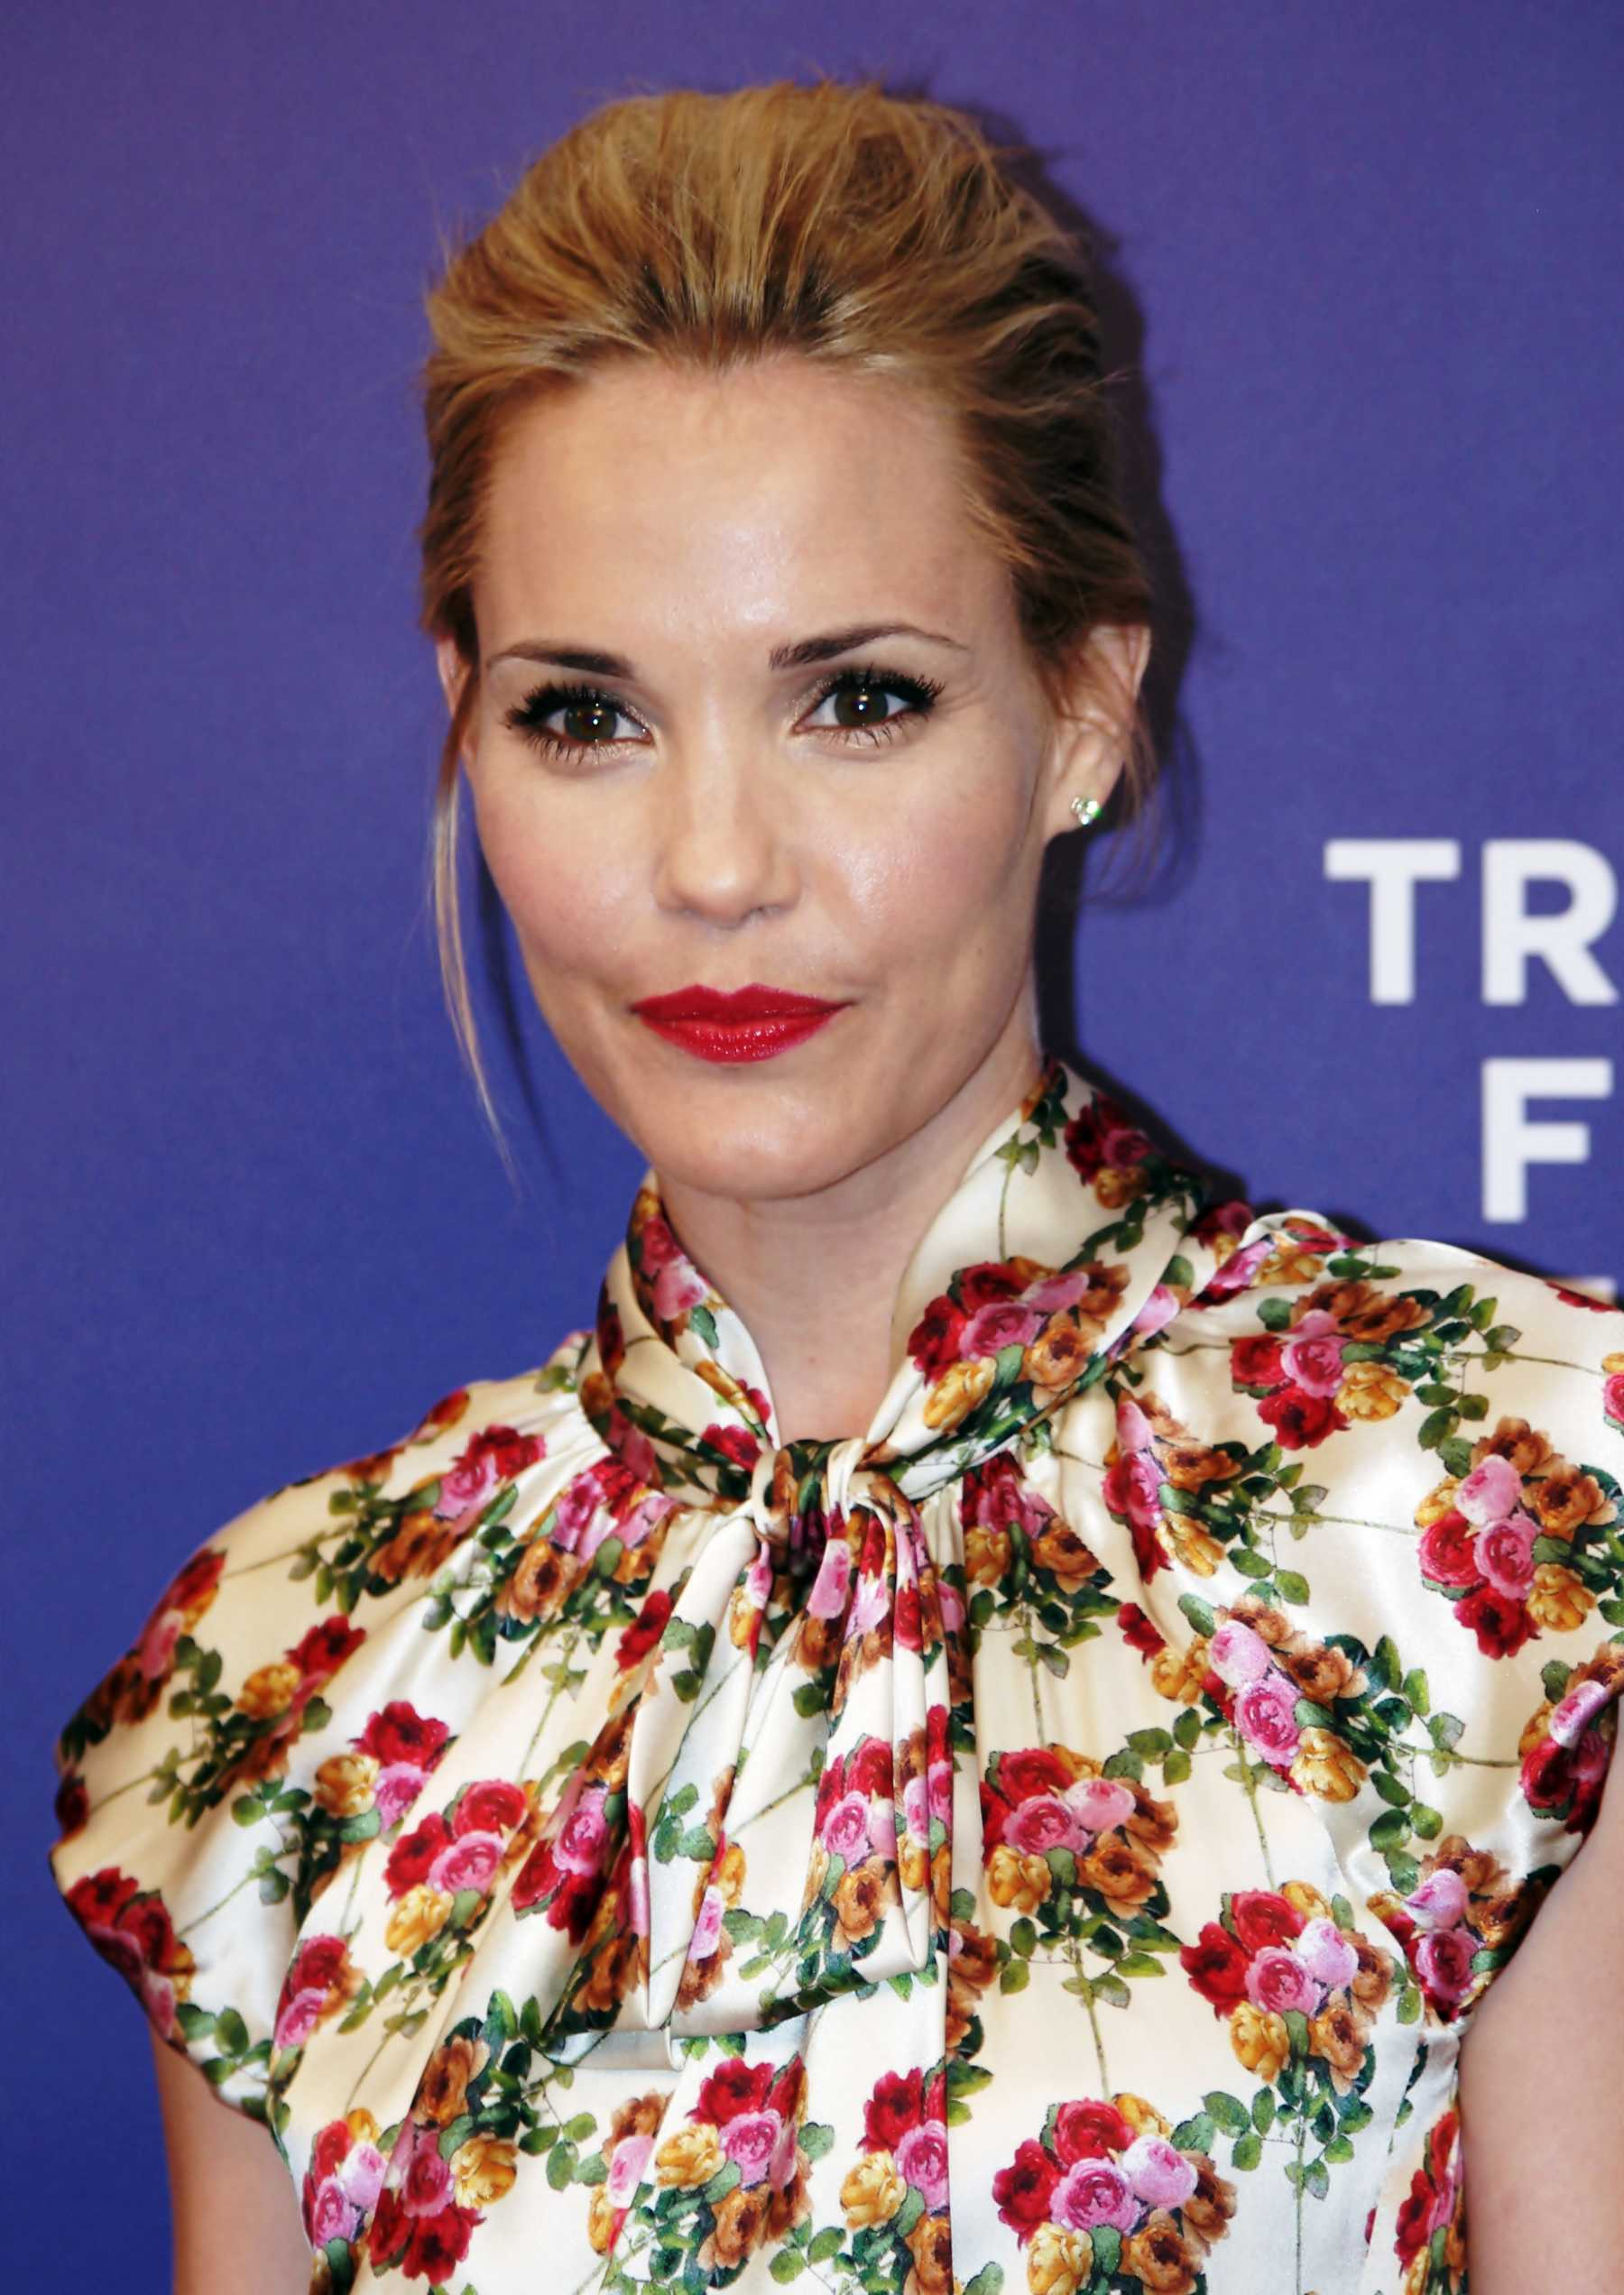 The Following's Leslie Bibb Joins 'The Odd Couple' Reboot | Leslie Bibb